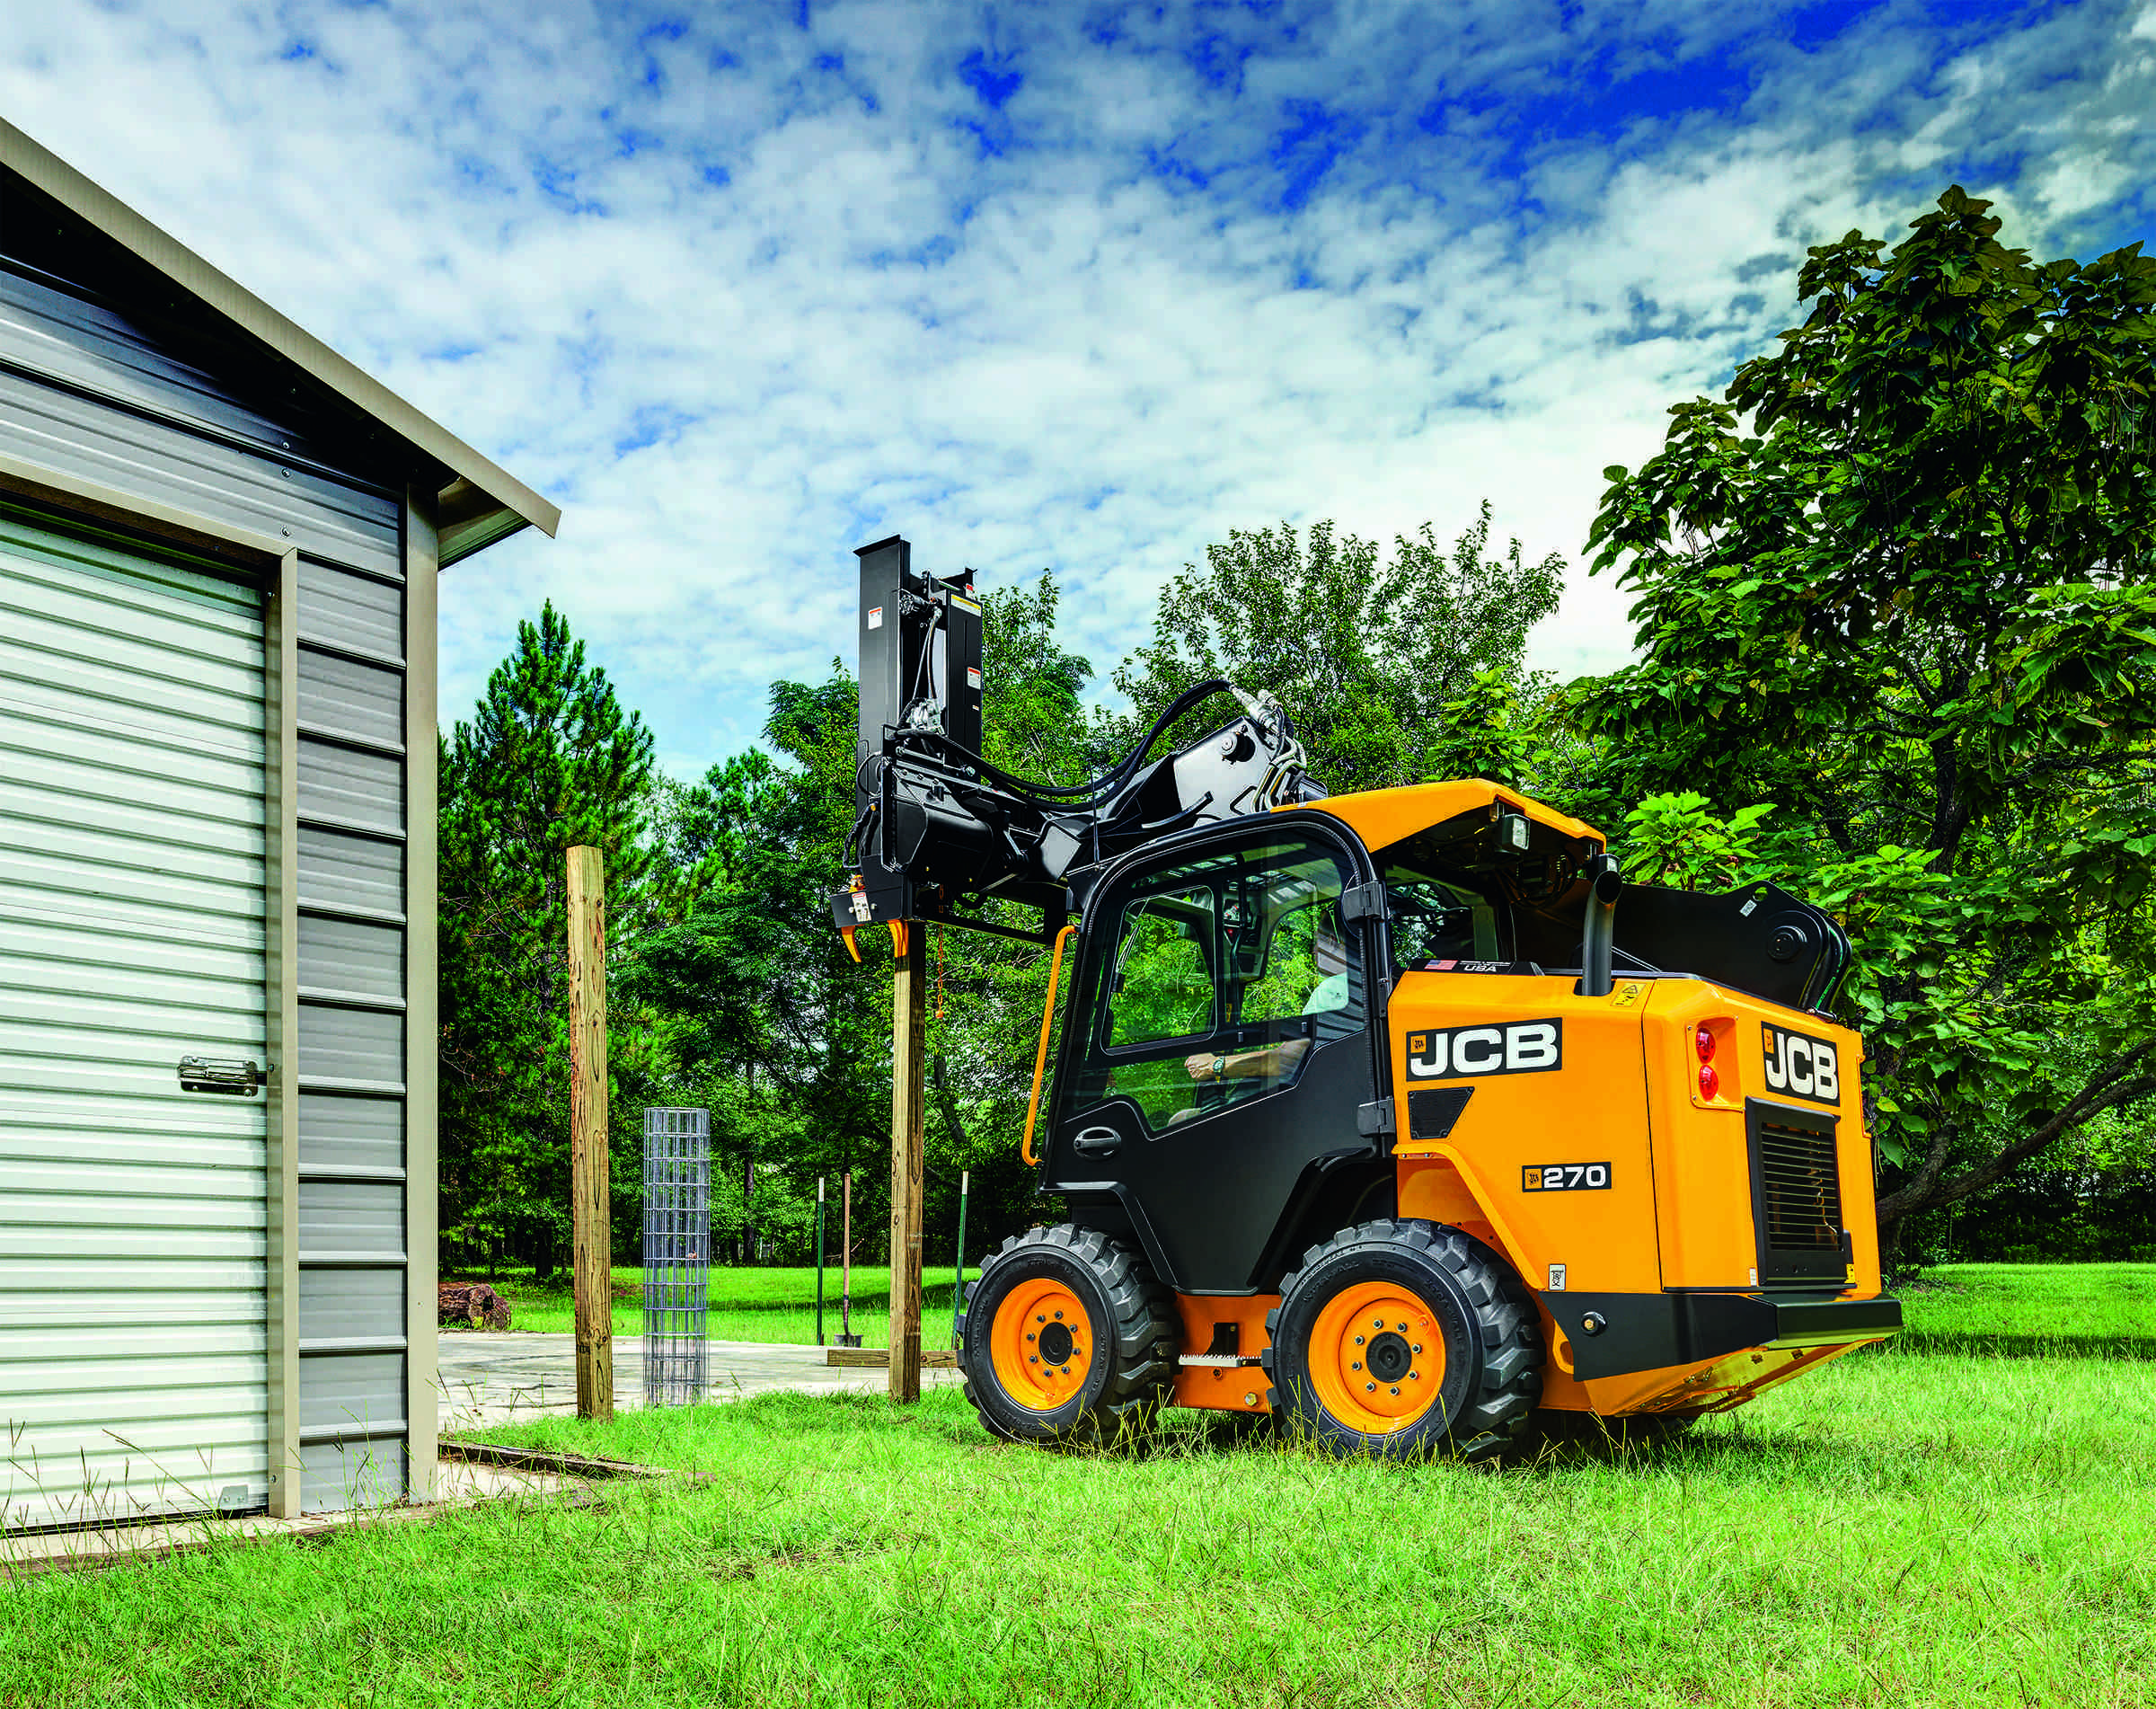 Is a mini skid steer right for you? Facts to help choose